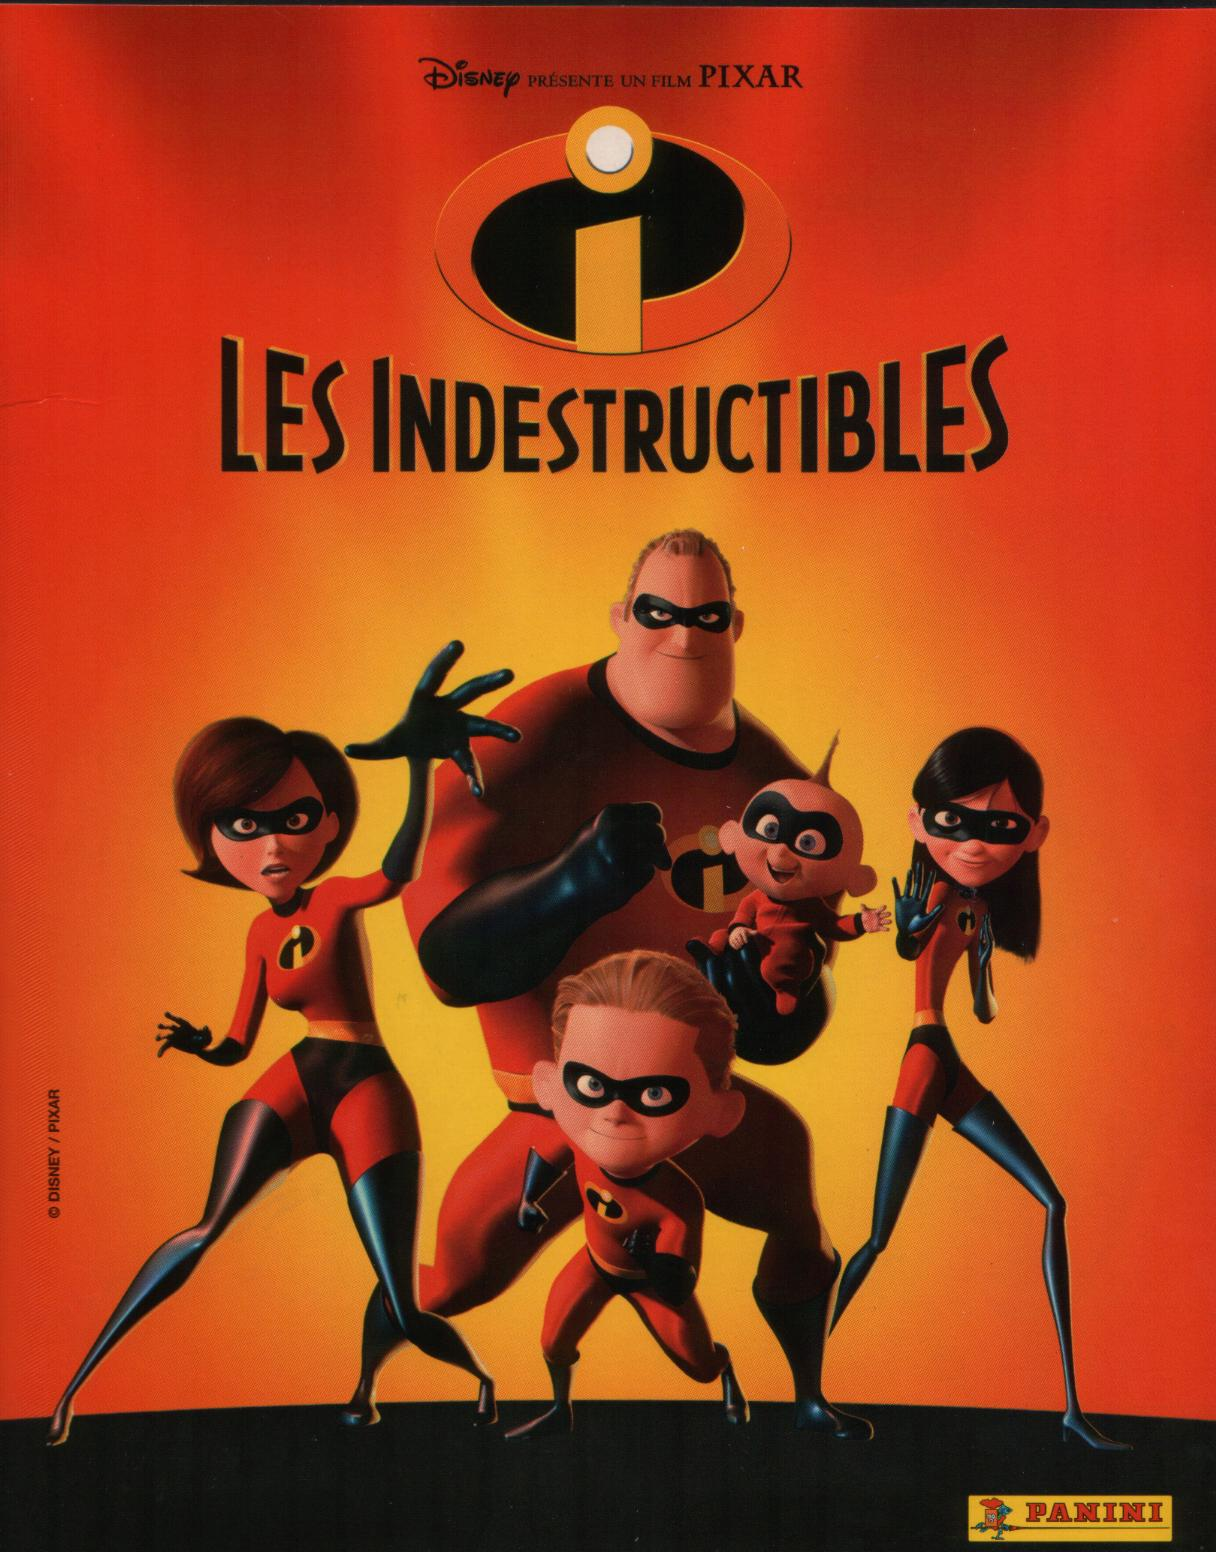 http://www.comixity.fr/wp-content/uploads/2013/01/photo-indestructibles.jpg